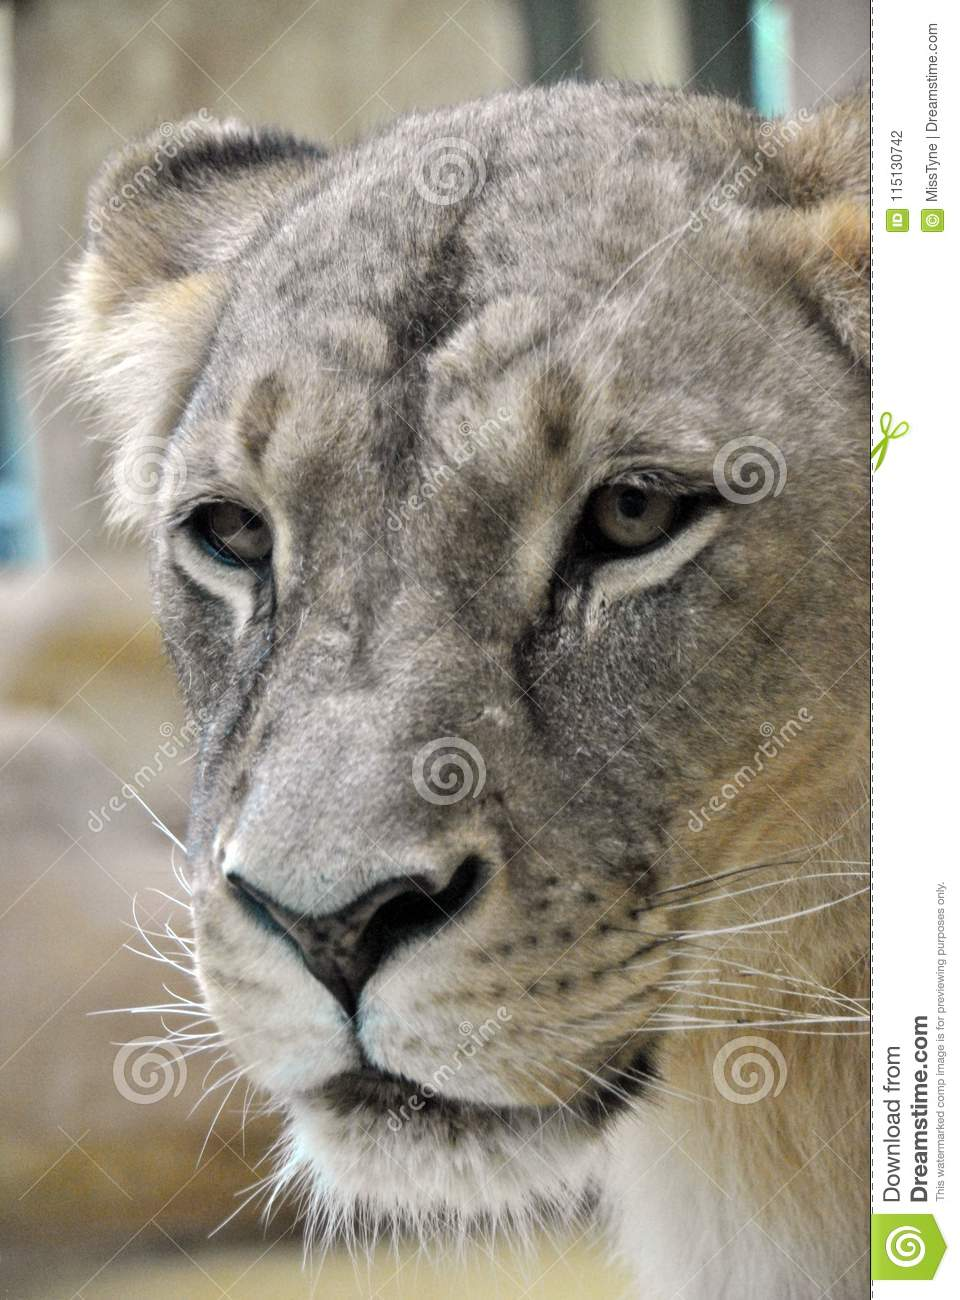 Close-up of a face of a lioness